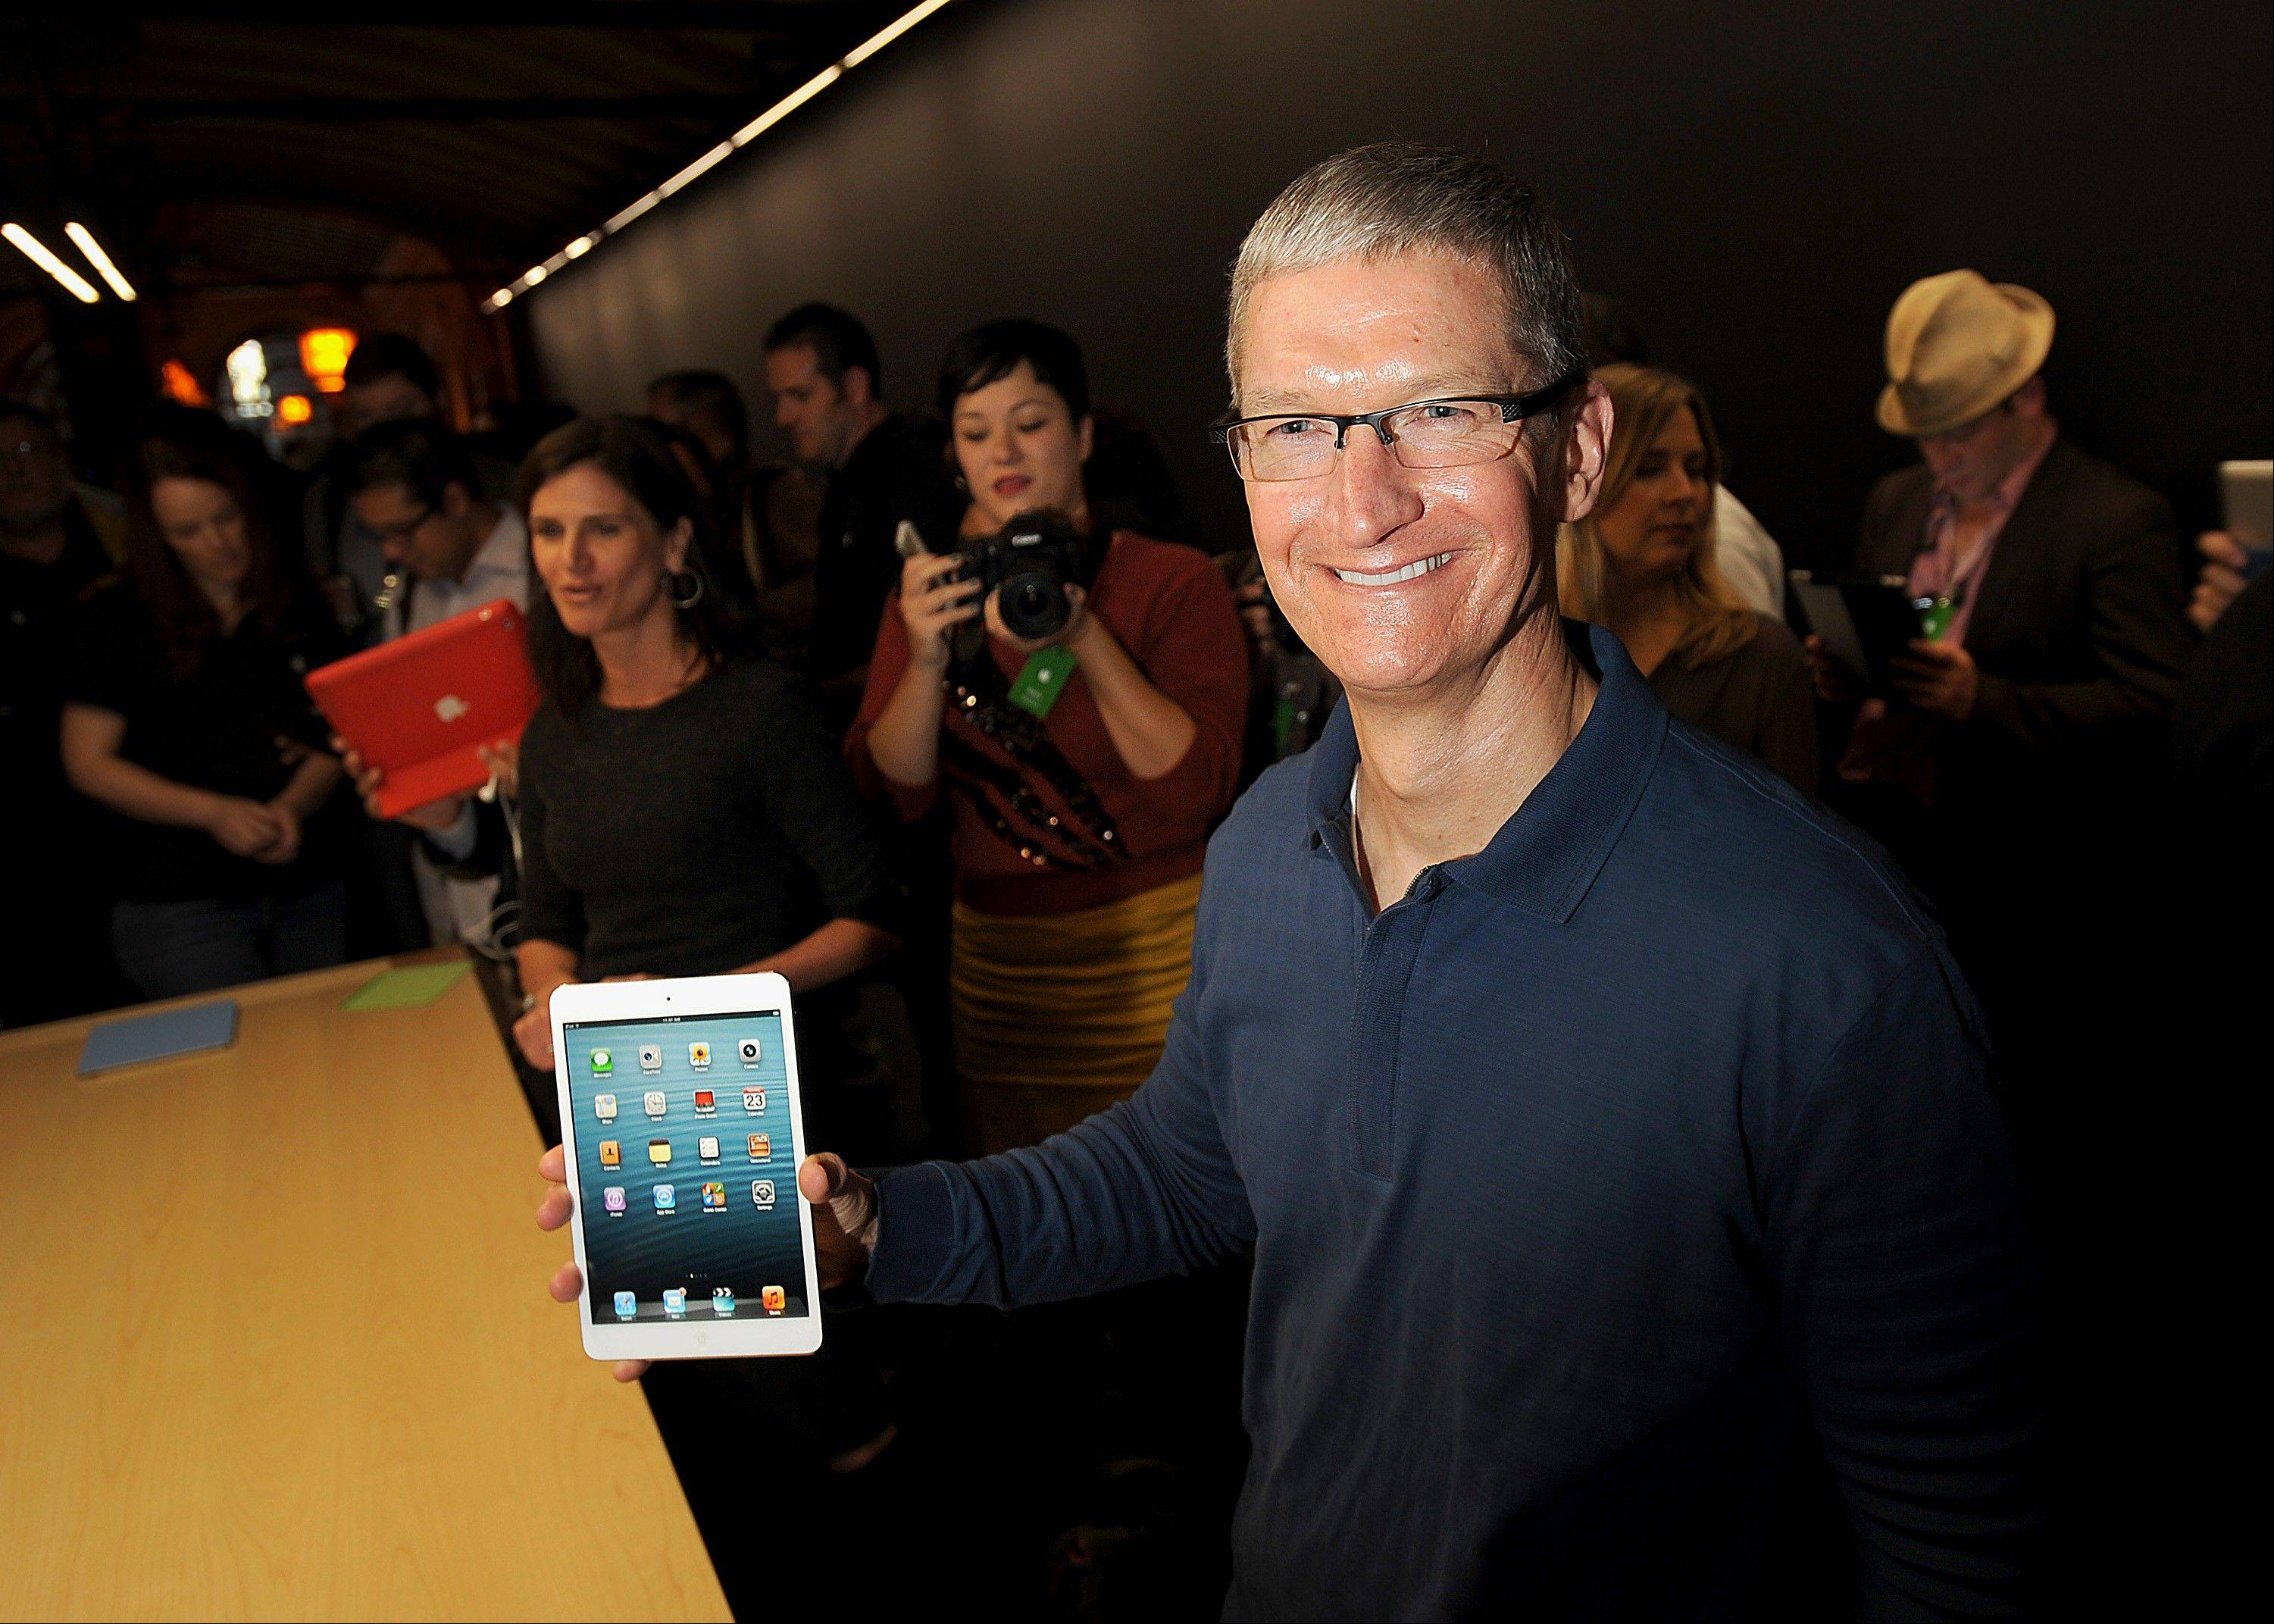 Apple CEO Tim Cook said Thursday the company will spend $100 million in 2013 to move production of one of its existing lines of Mac computers to the U.S. from China.